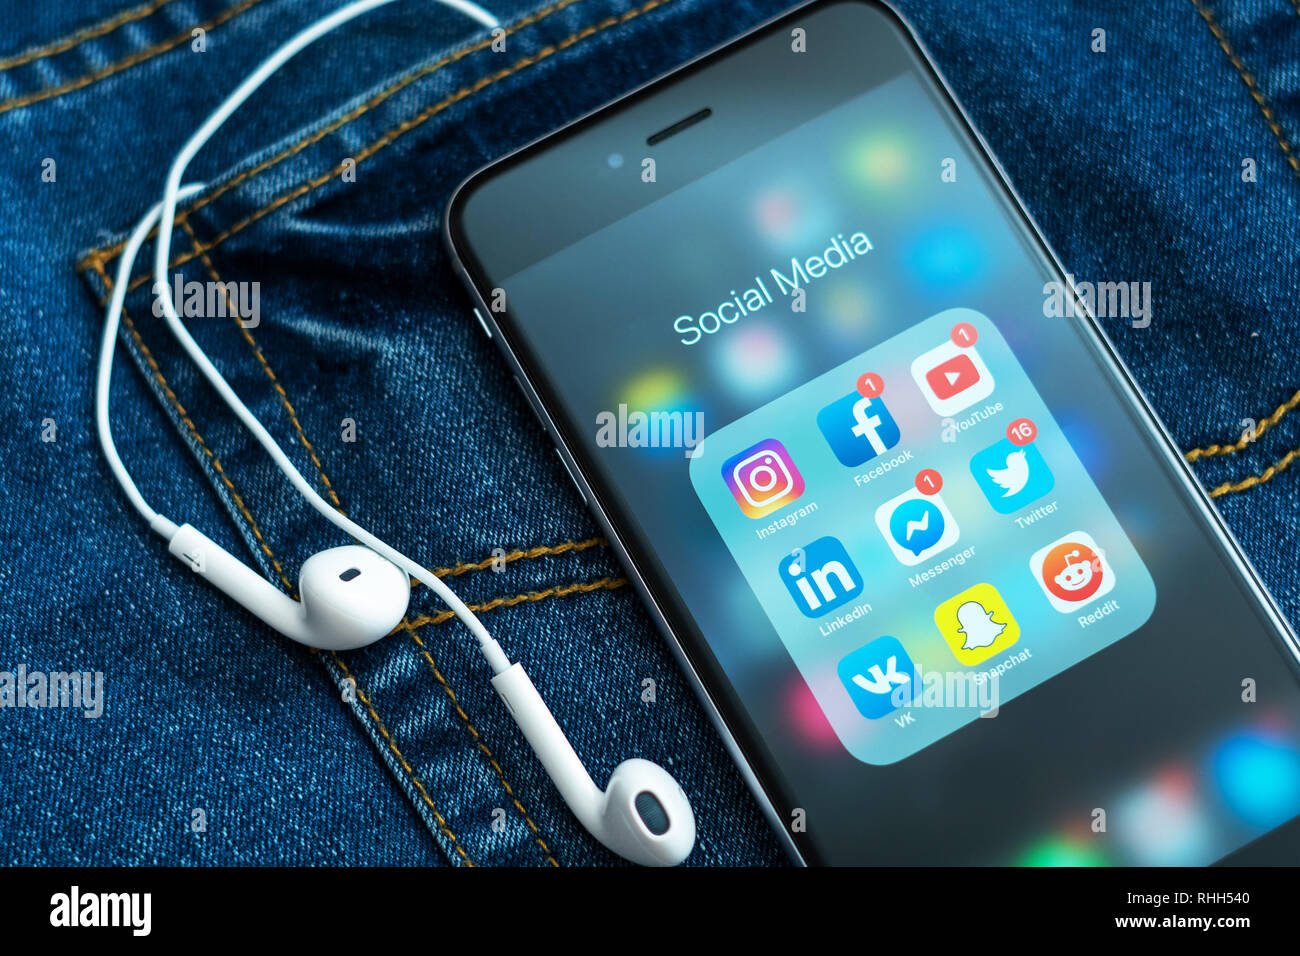 iPhone with icons of social media: instagram, youtube, reddit, facebook, twitter, snapchat on the screen. Social media icons. Denim jeans background - Stock Image